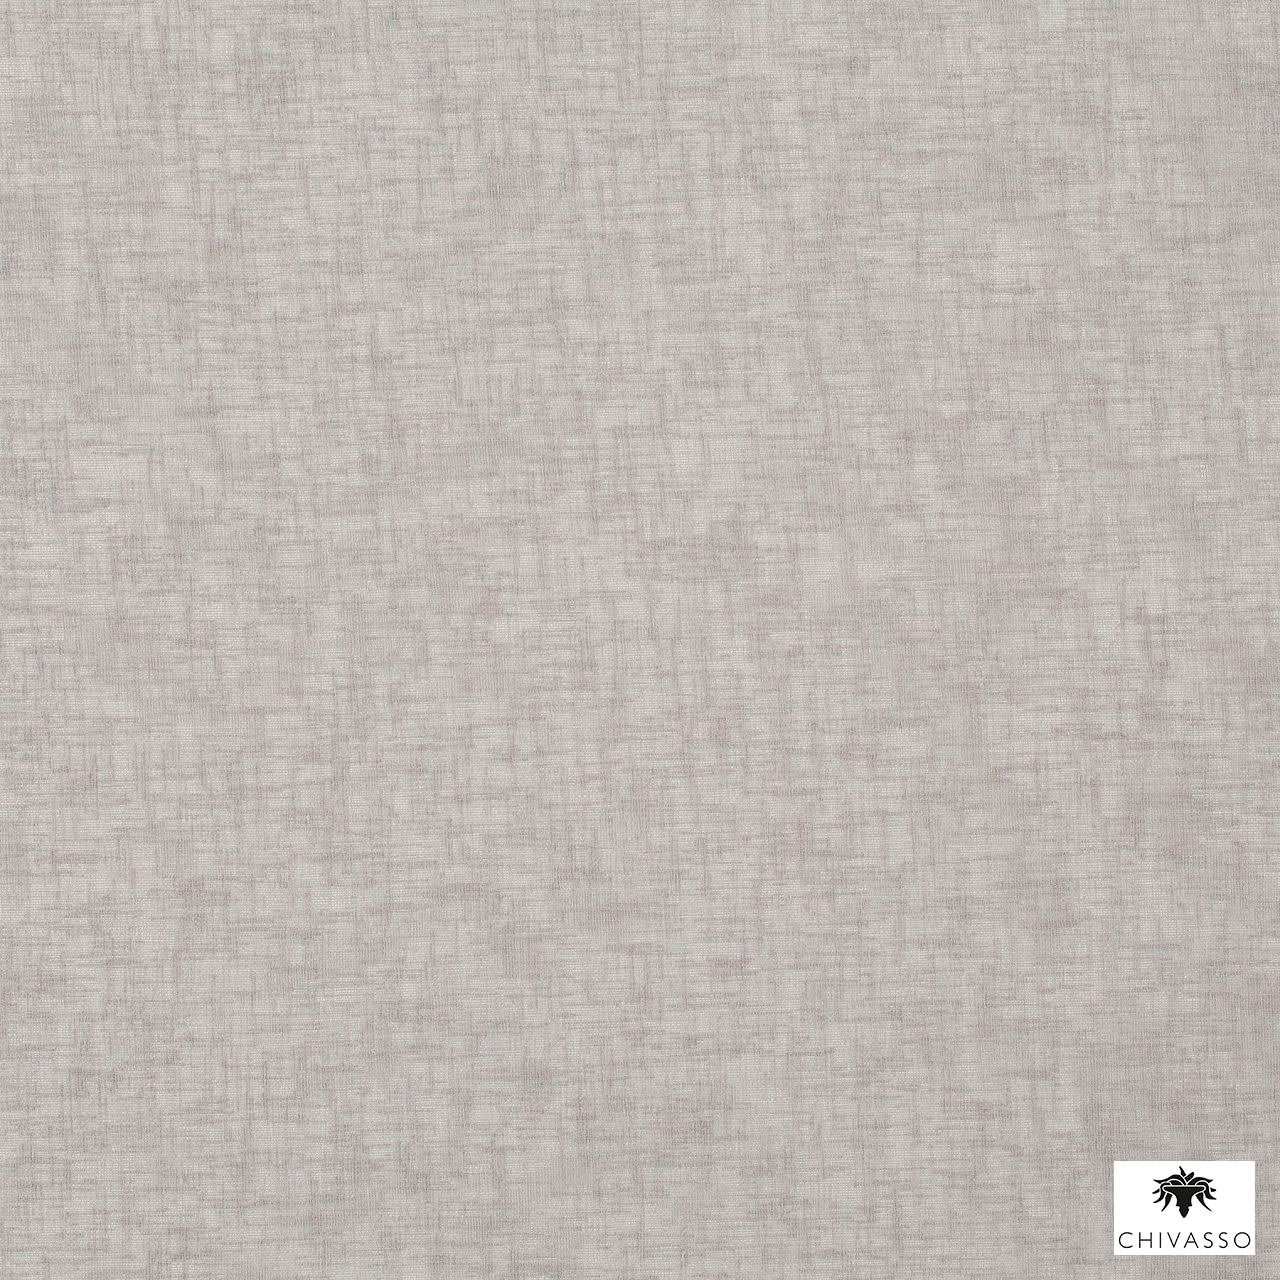 Chivasso - Stazzano - Ce5116-092  | Curtain Fabric - Beige, Plain, Synthetic, Domestic Use, Railroaded, Wide Width